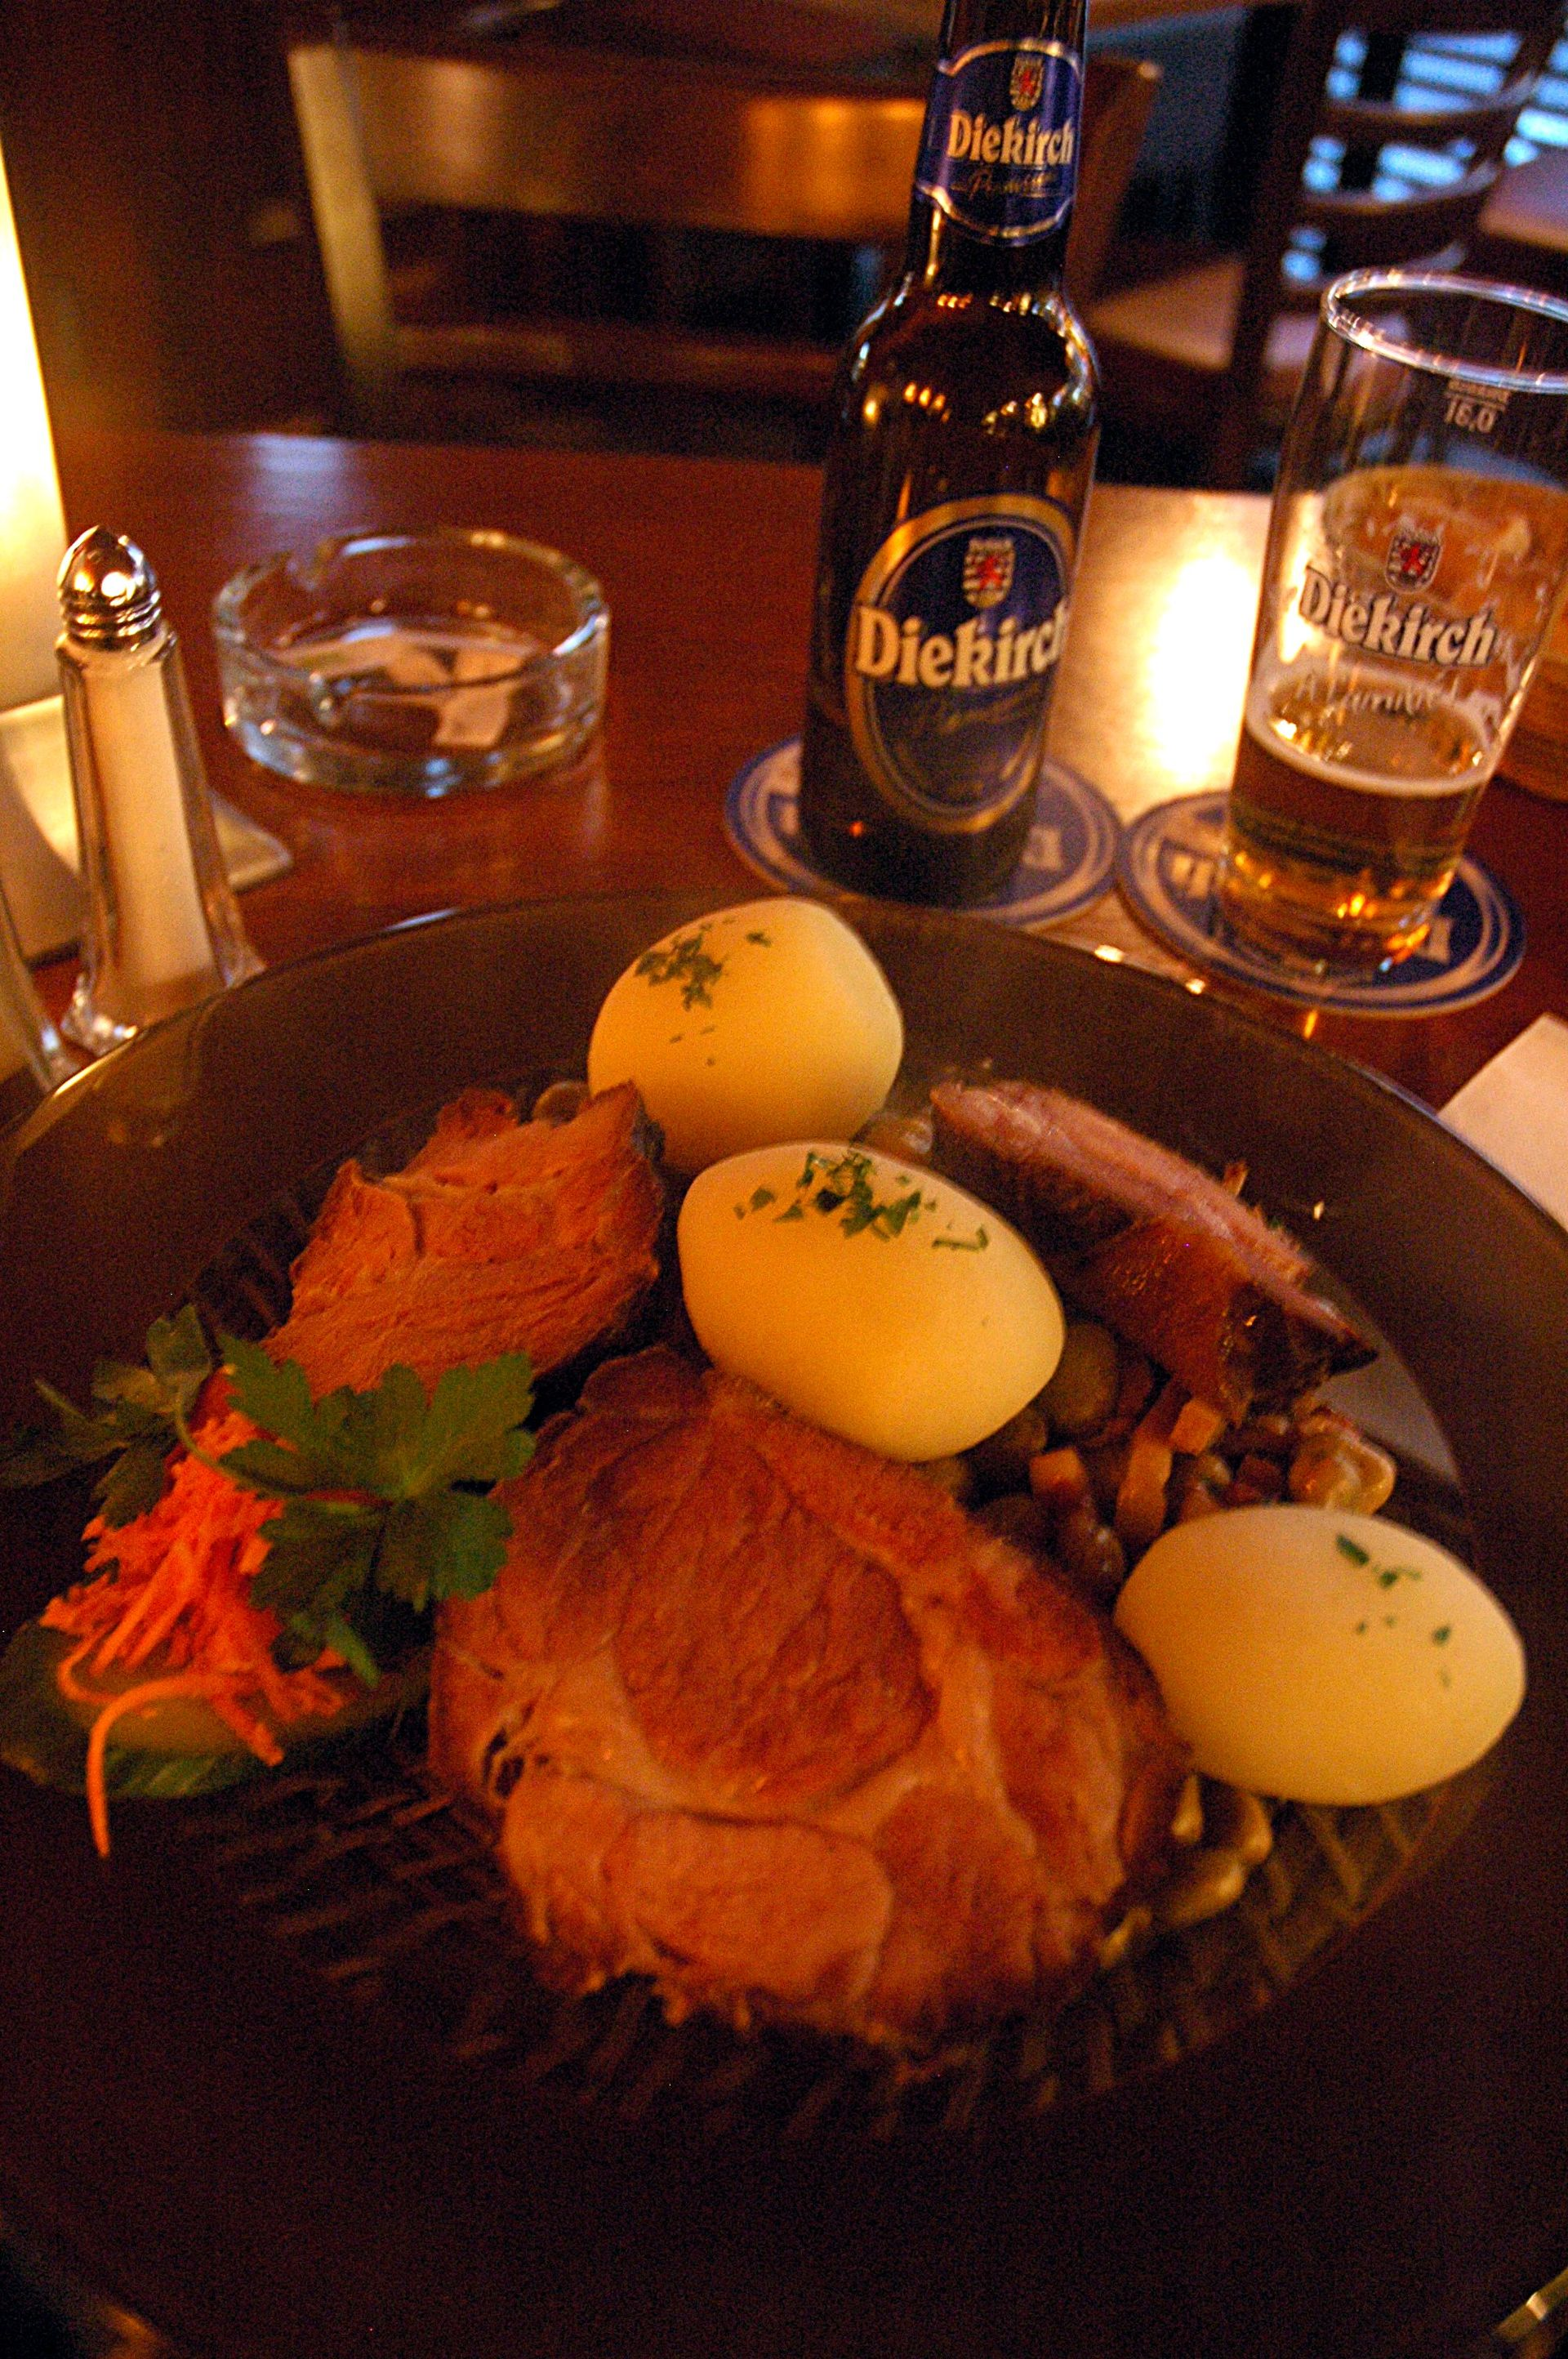 Luxembourg cuisine wikipedia for Cuisine luxembourg